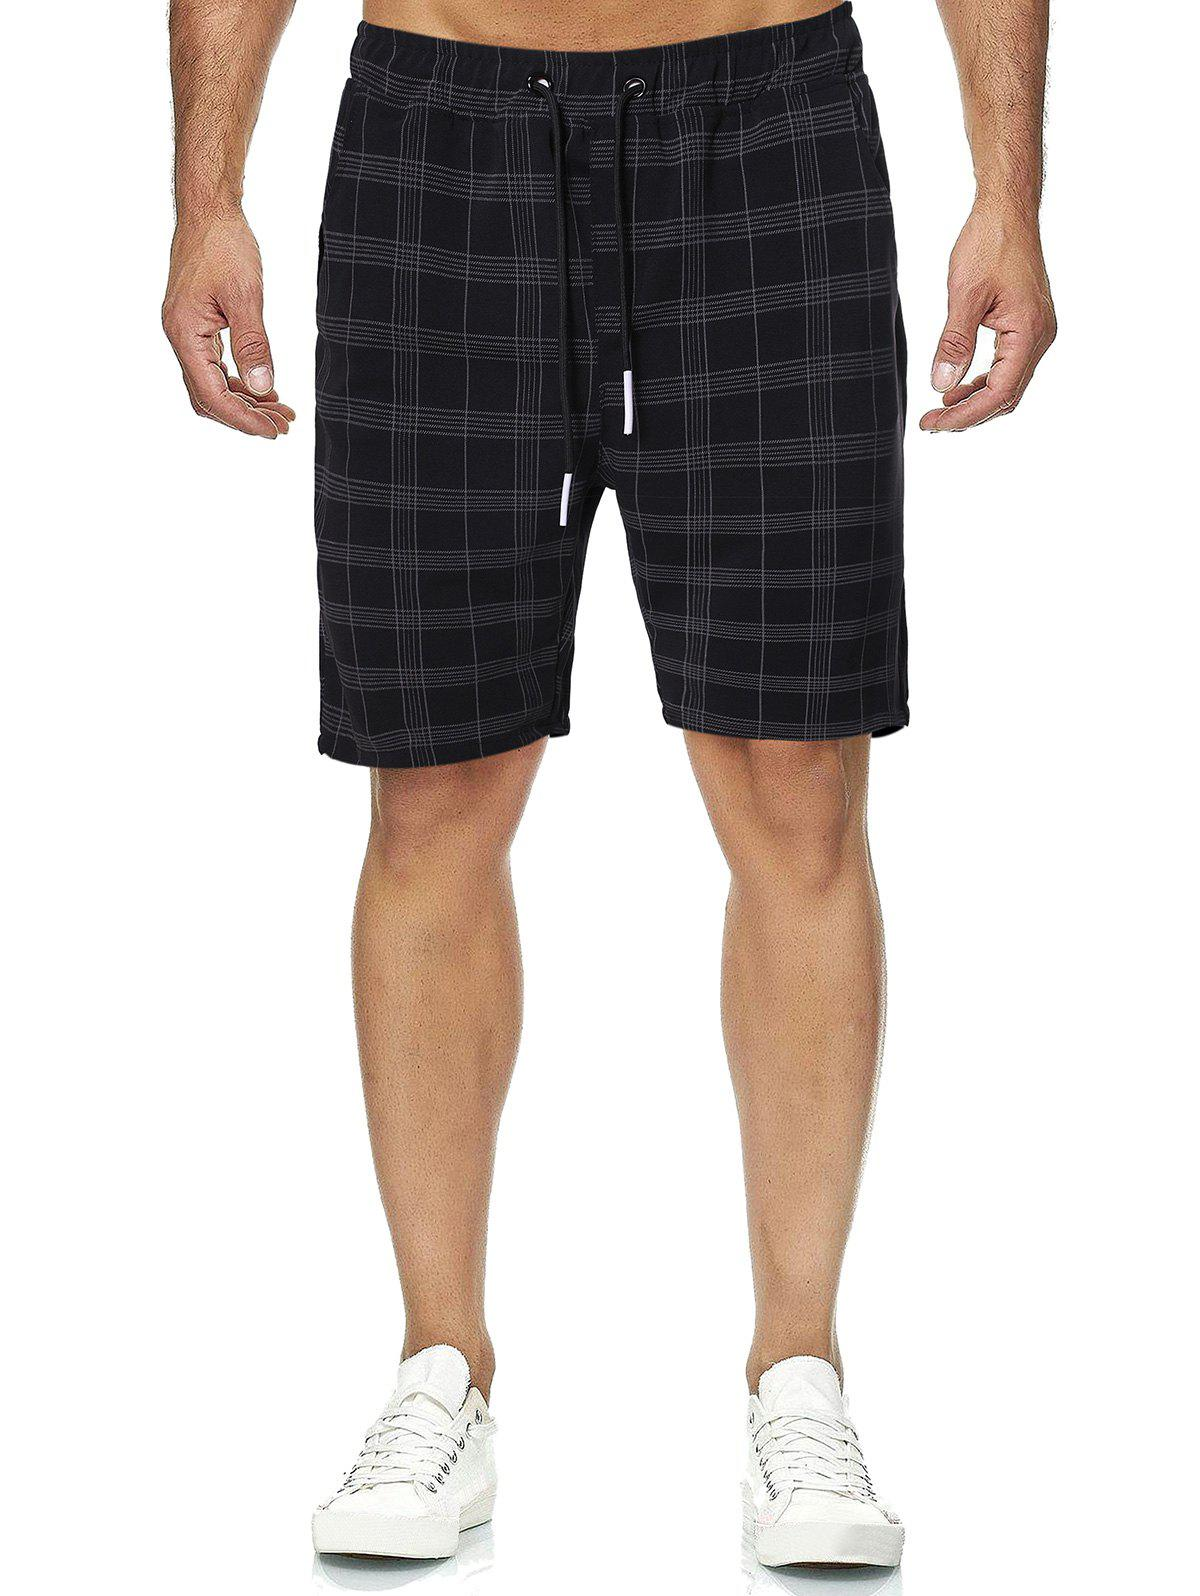 Plaid Print Drawstring Casual Shorts - multicolor L